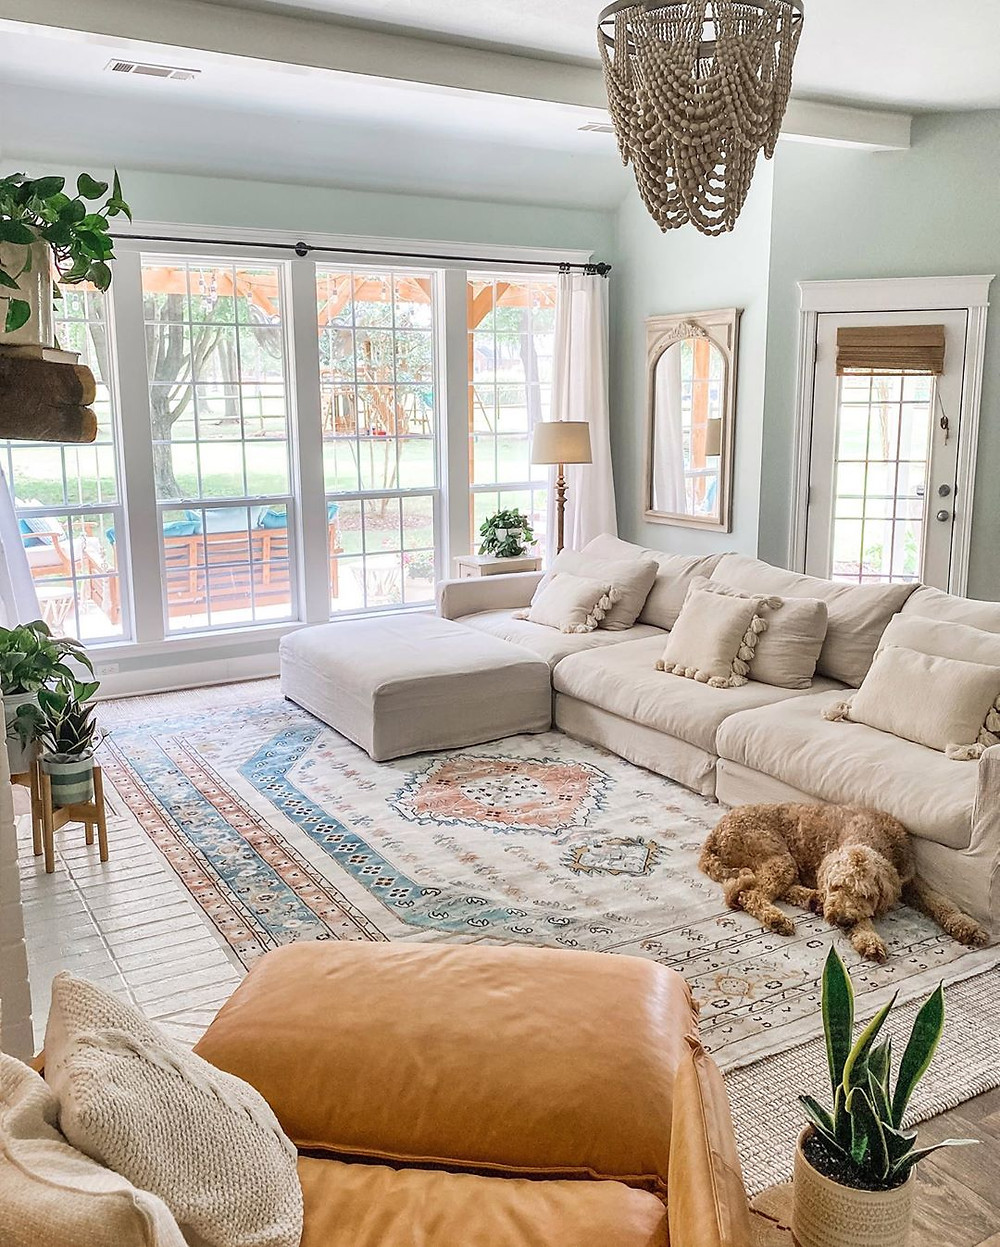 large open living space with dog sleeping